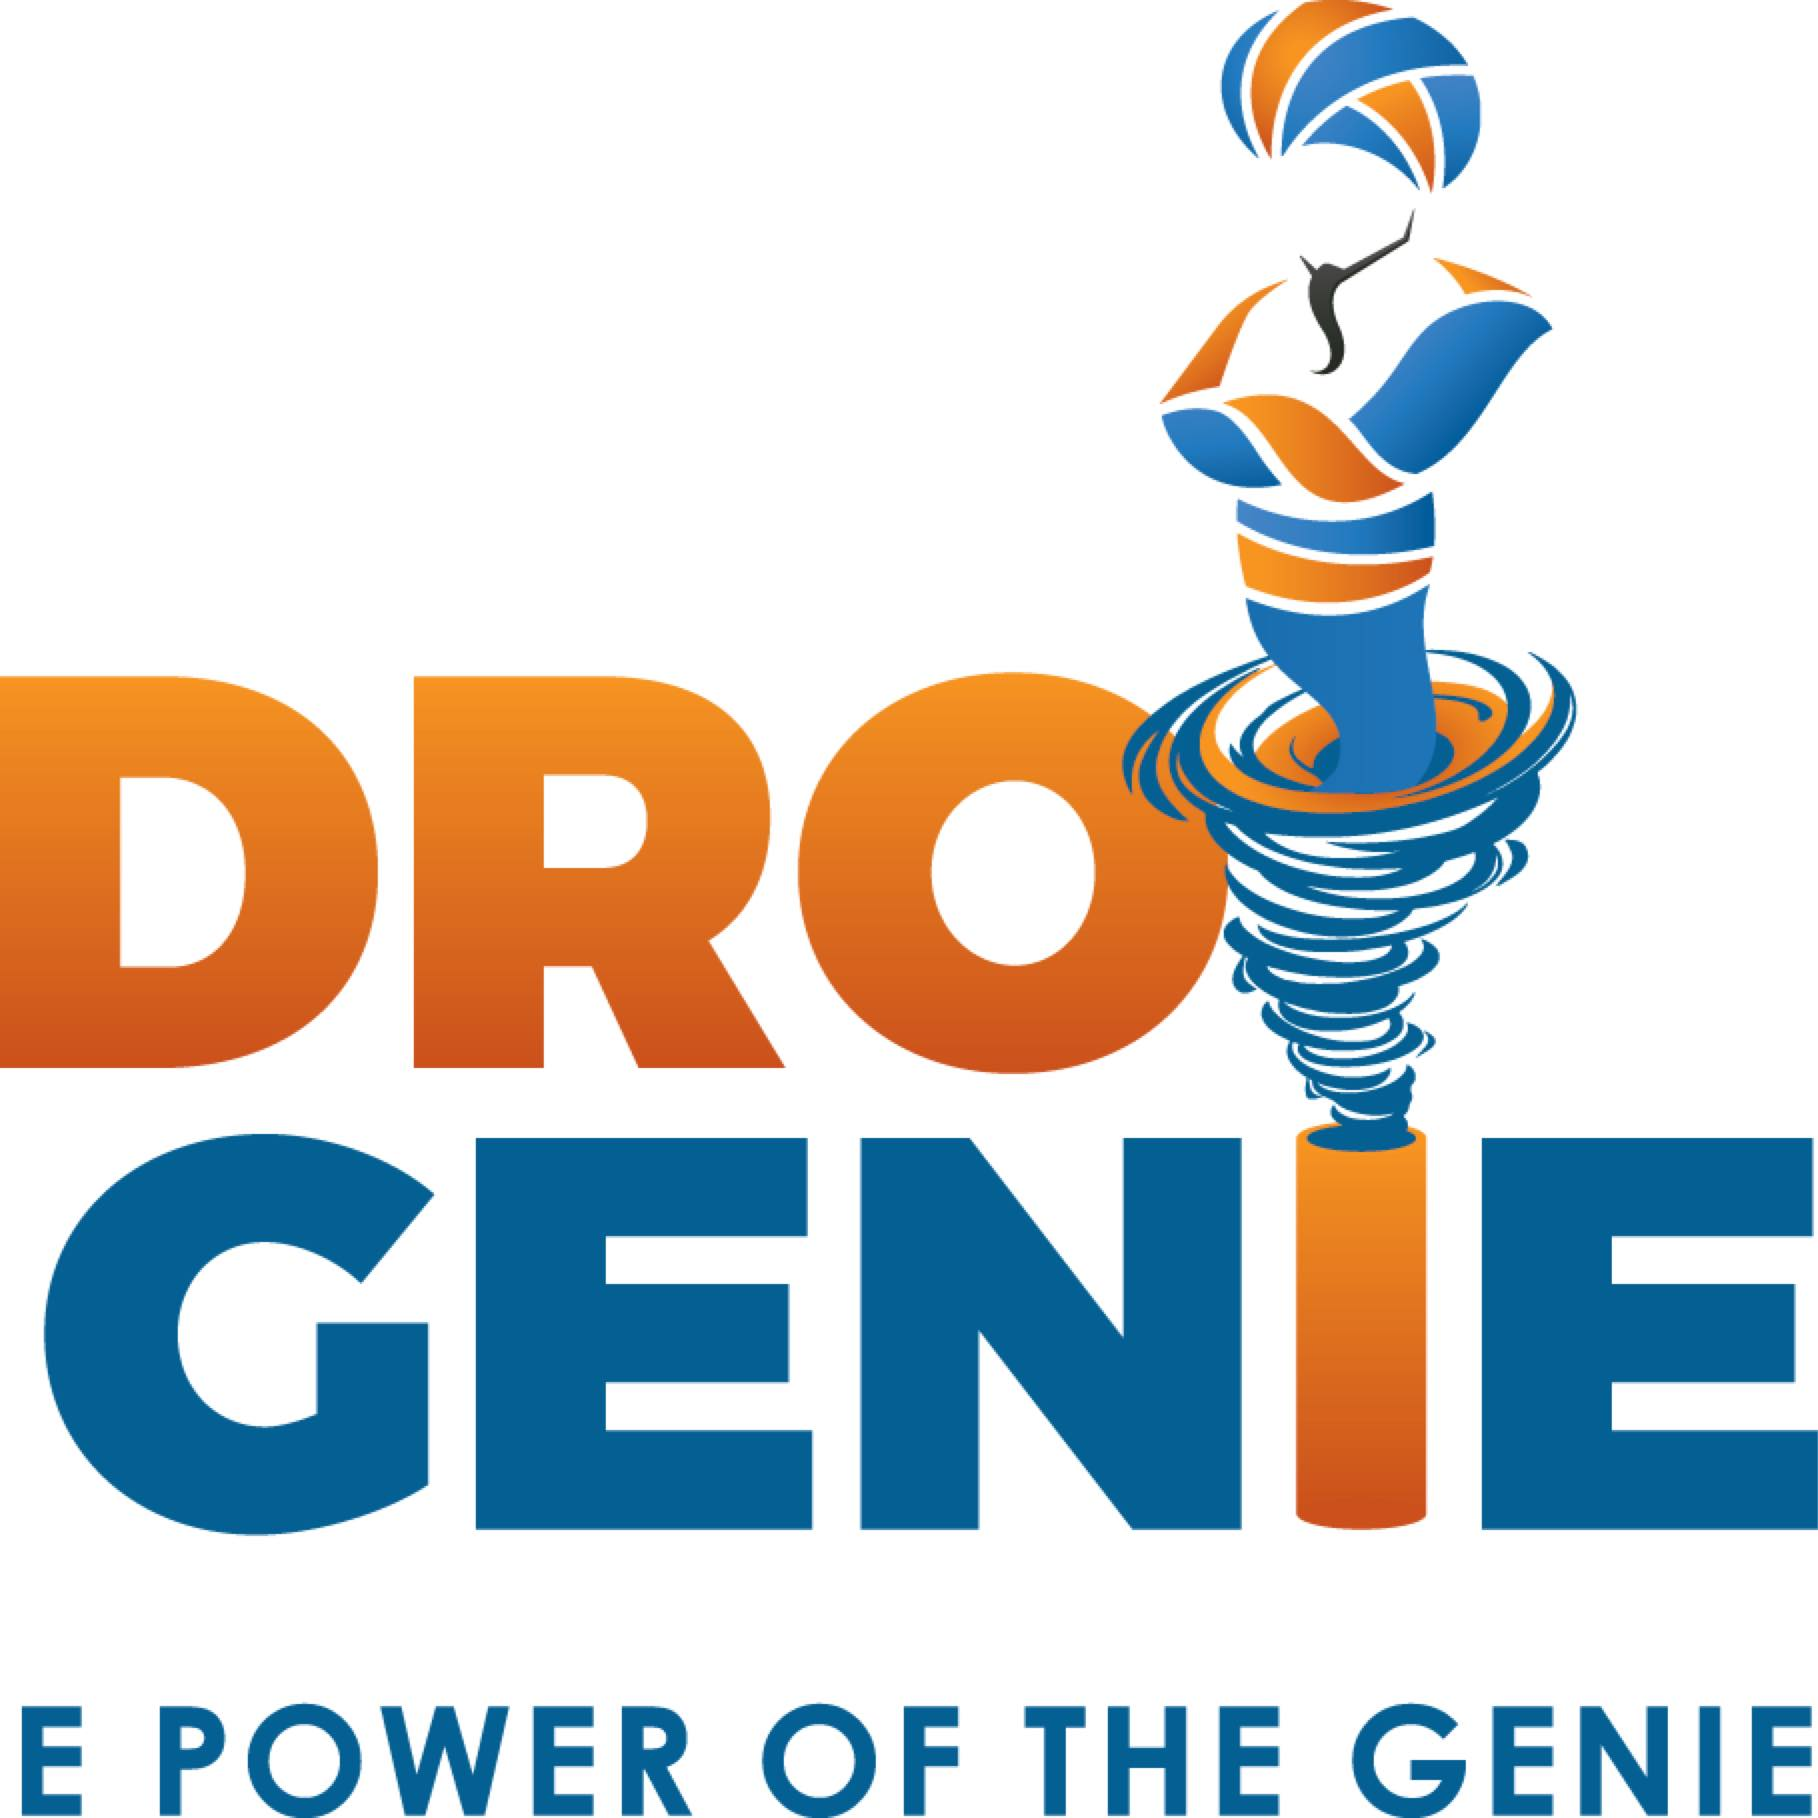 save on gas oil electricity bills for life call hydro ...